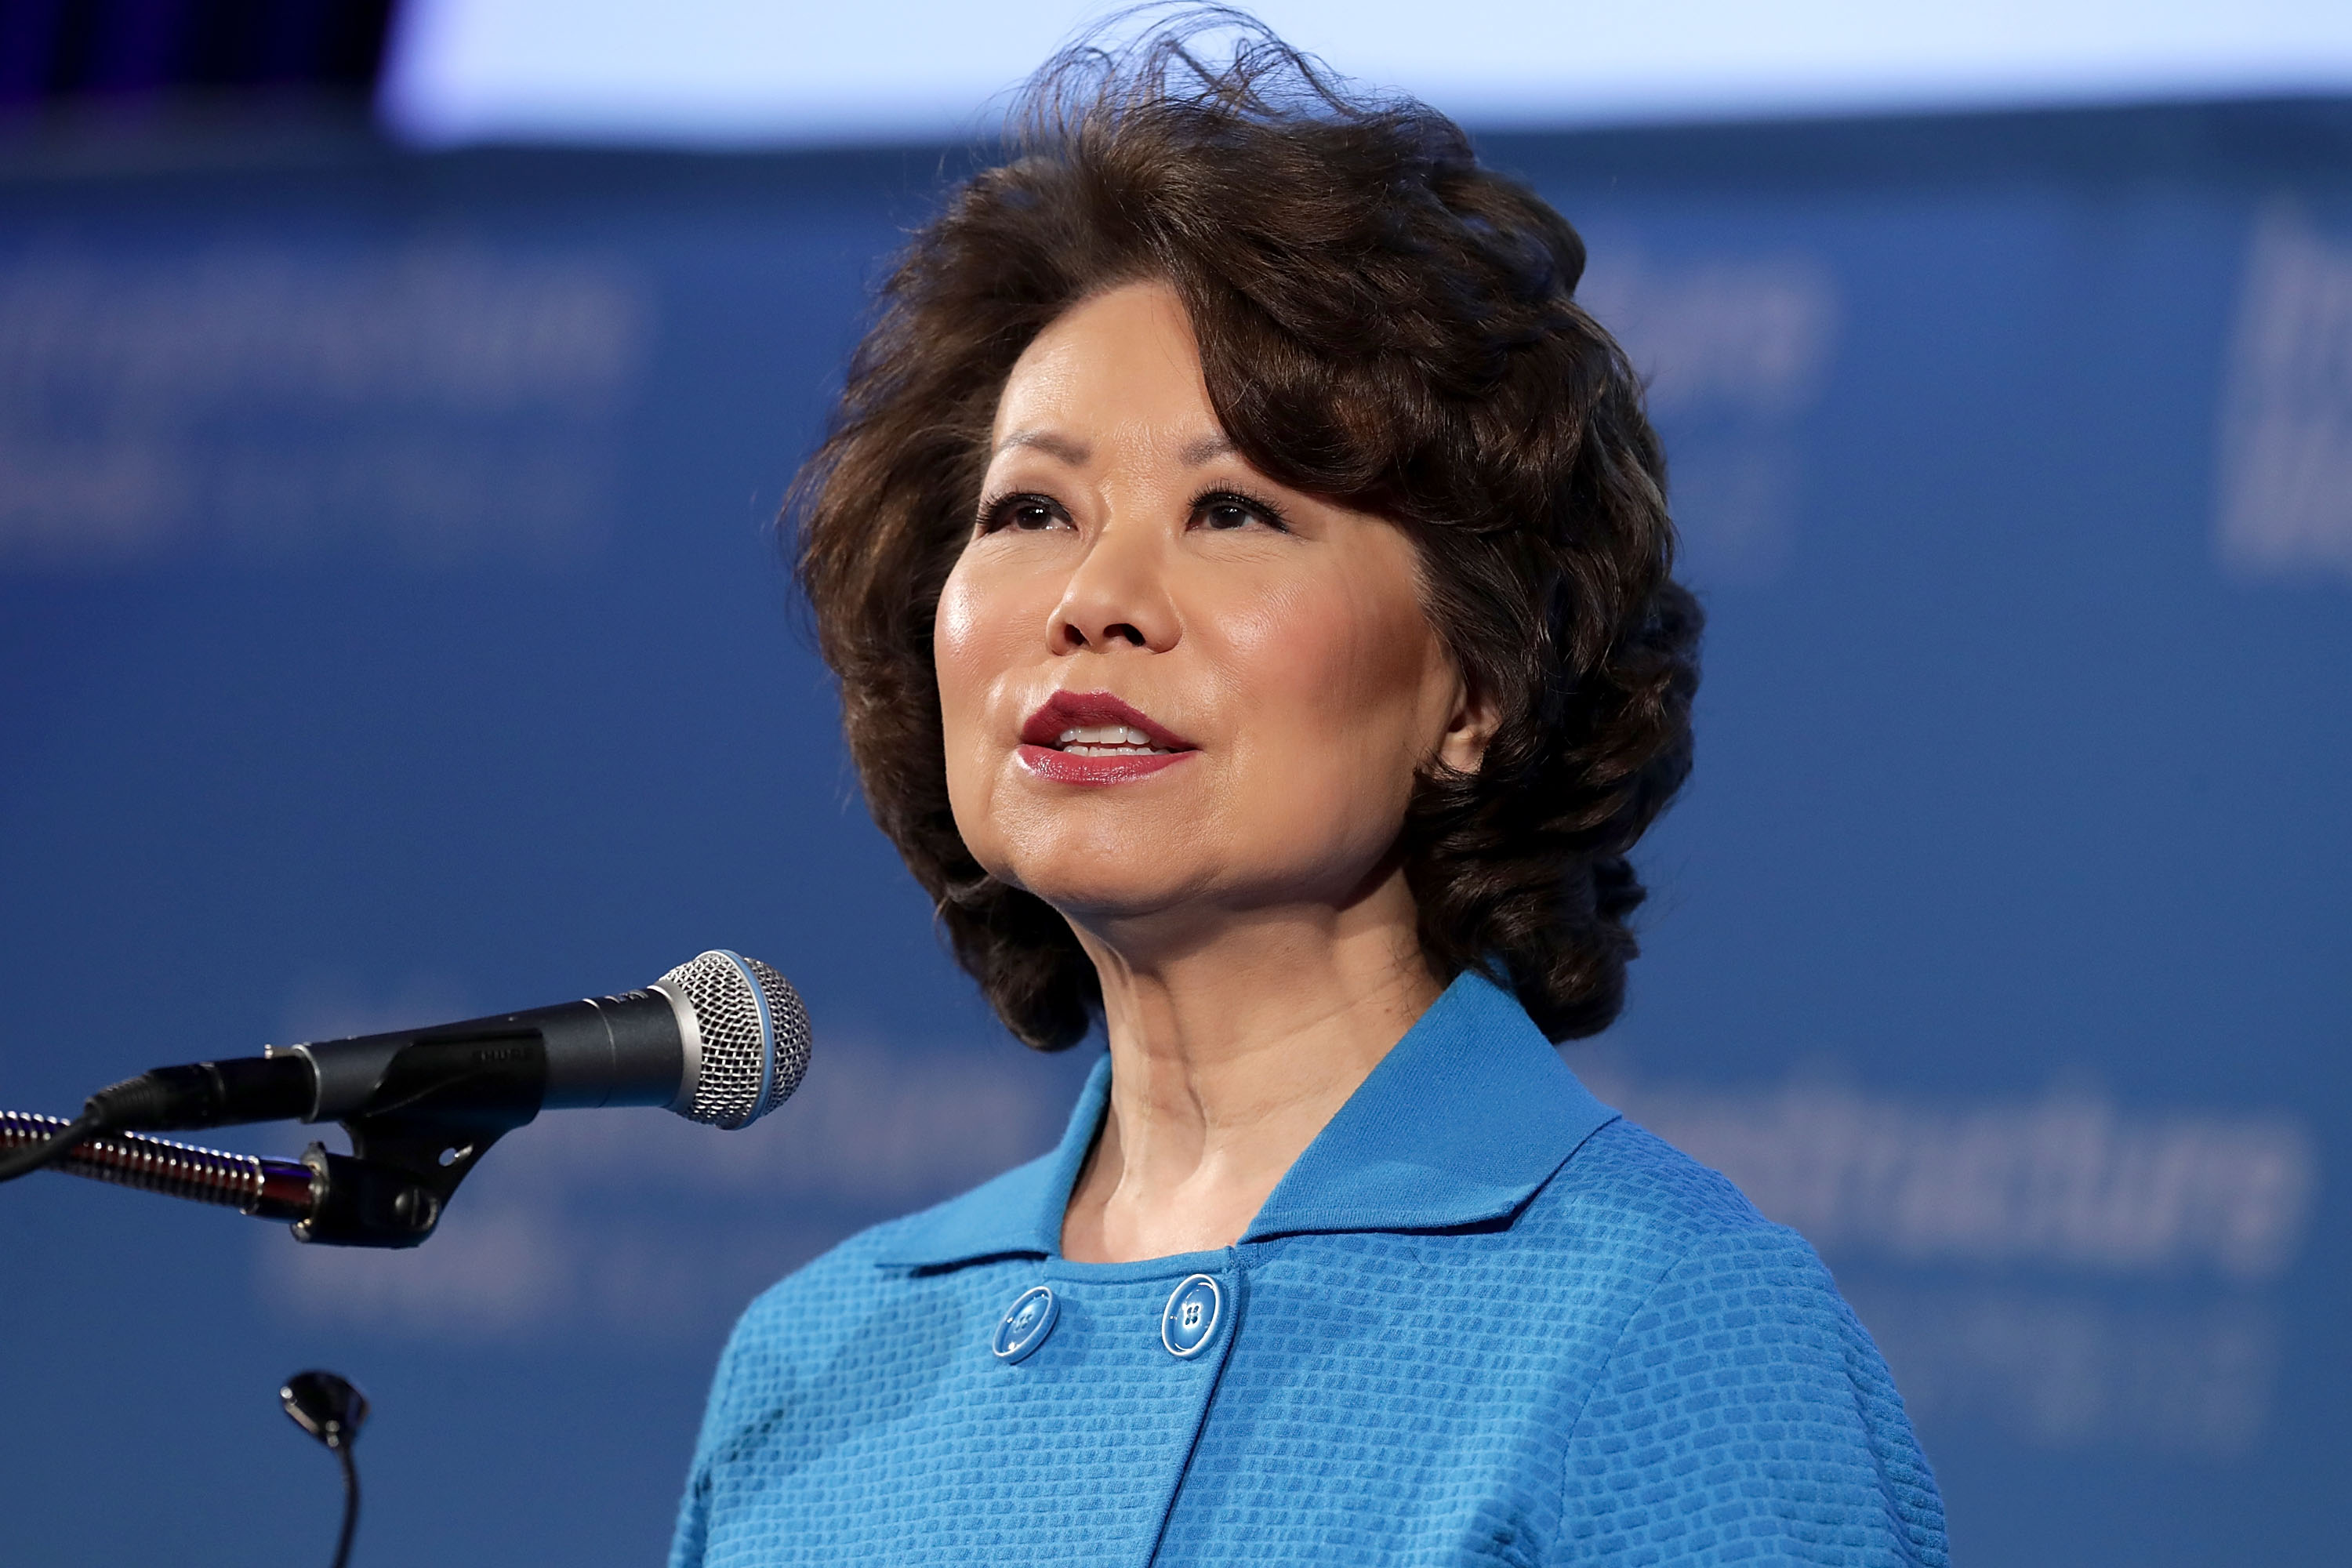 Fear Of Driving >> 11alive.com | Transportation Secretary Elaine Chao in Atlanta Thursday for I-85 bridge ribbon ...